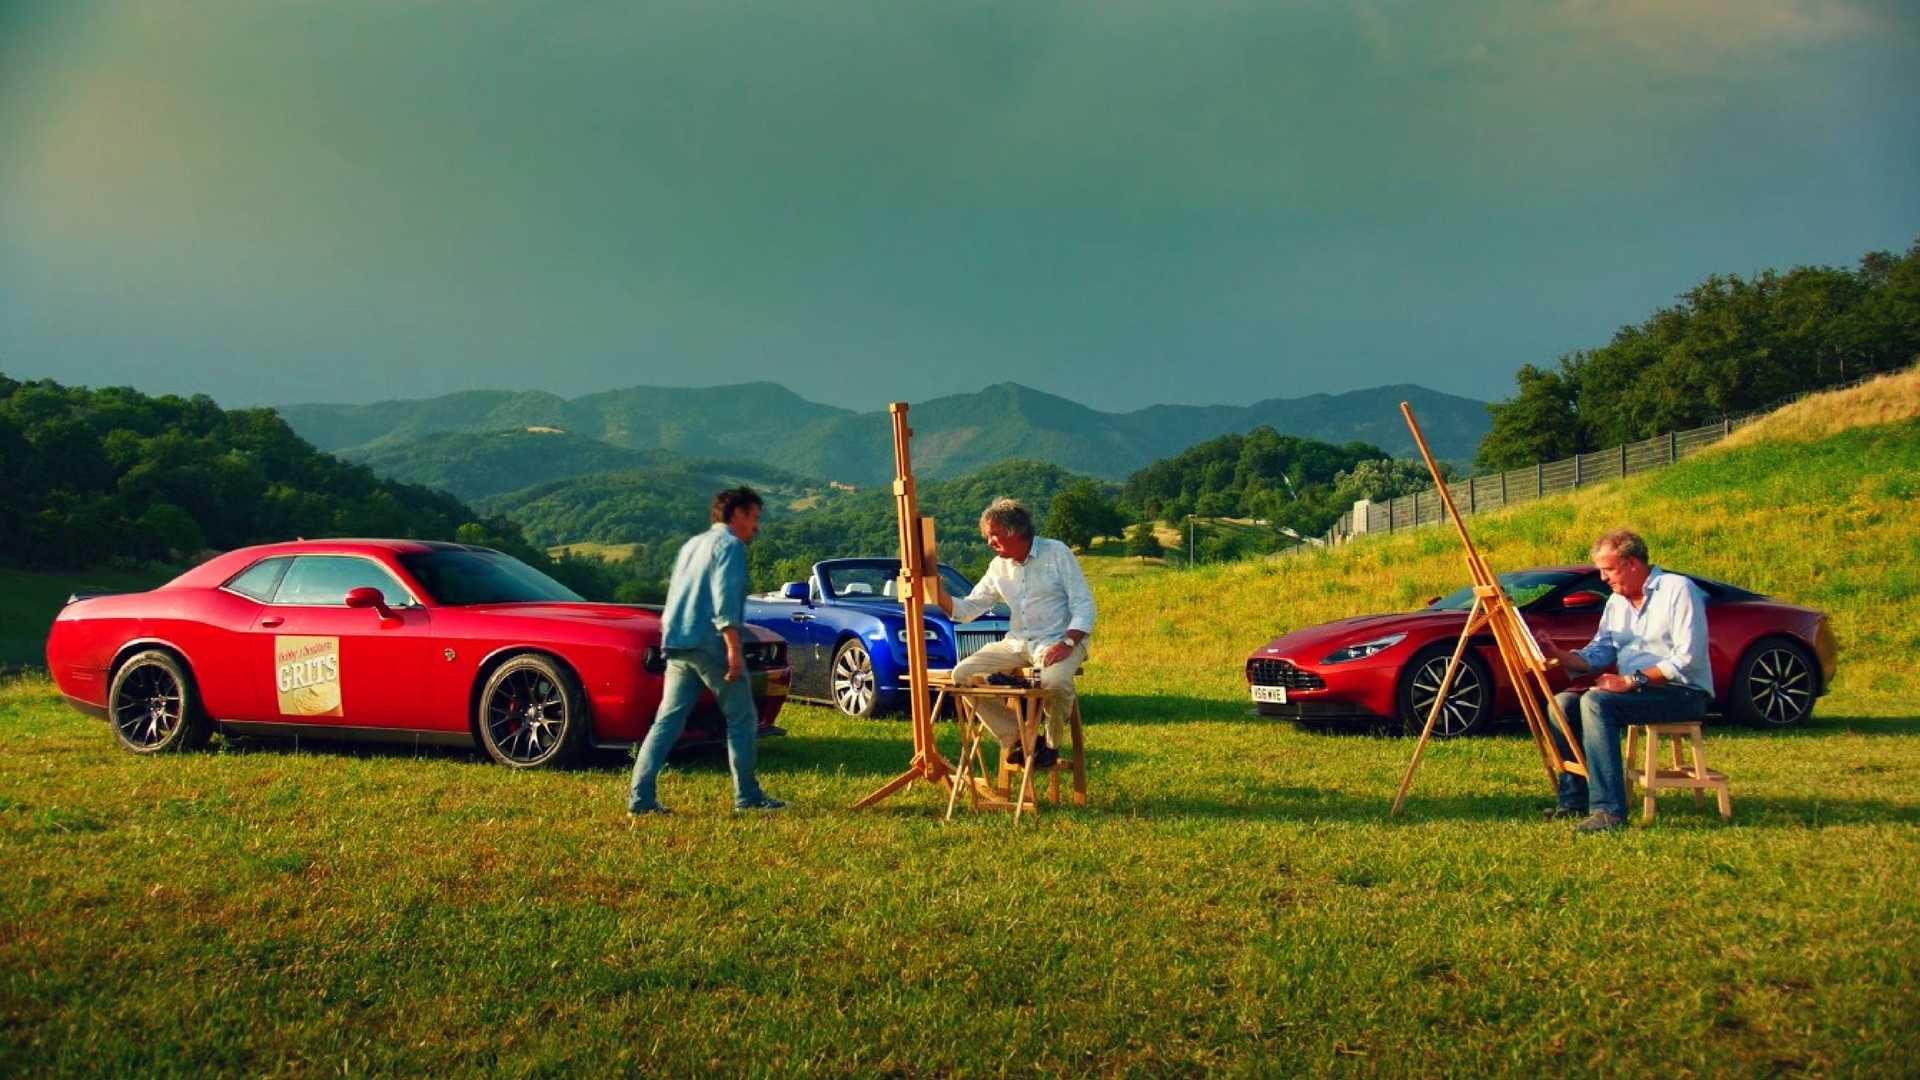 Clarkson Hammond and May painting their cars during The Grand Tour Episode 3